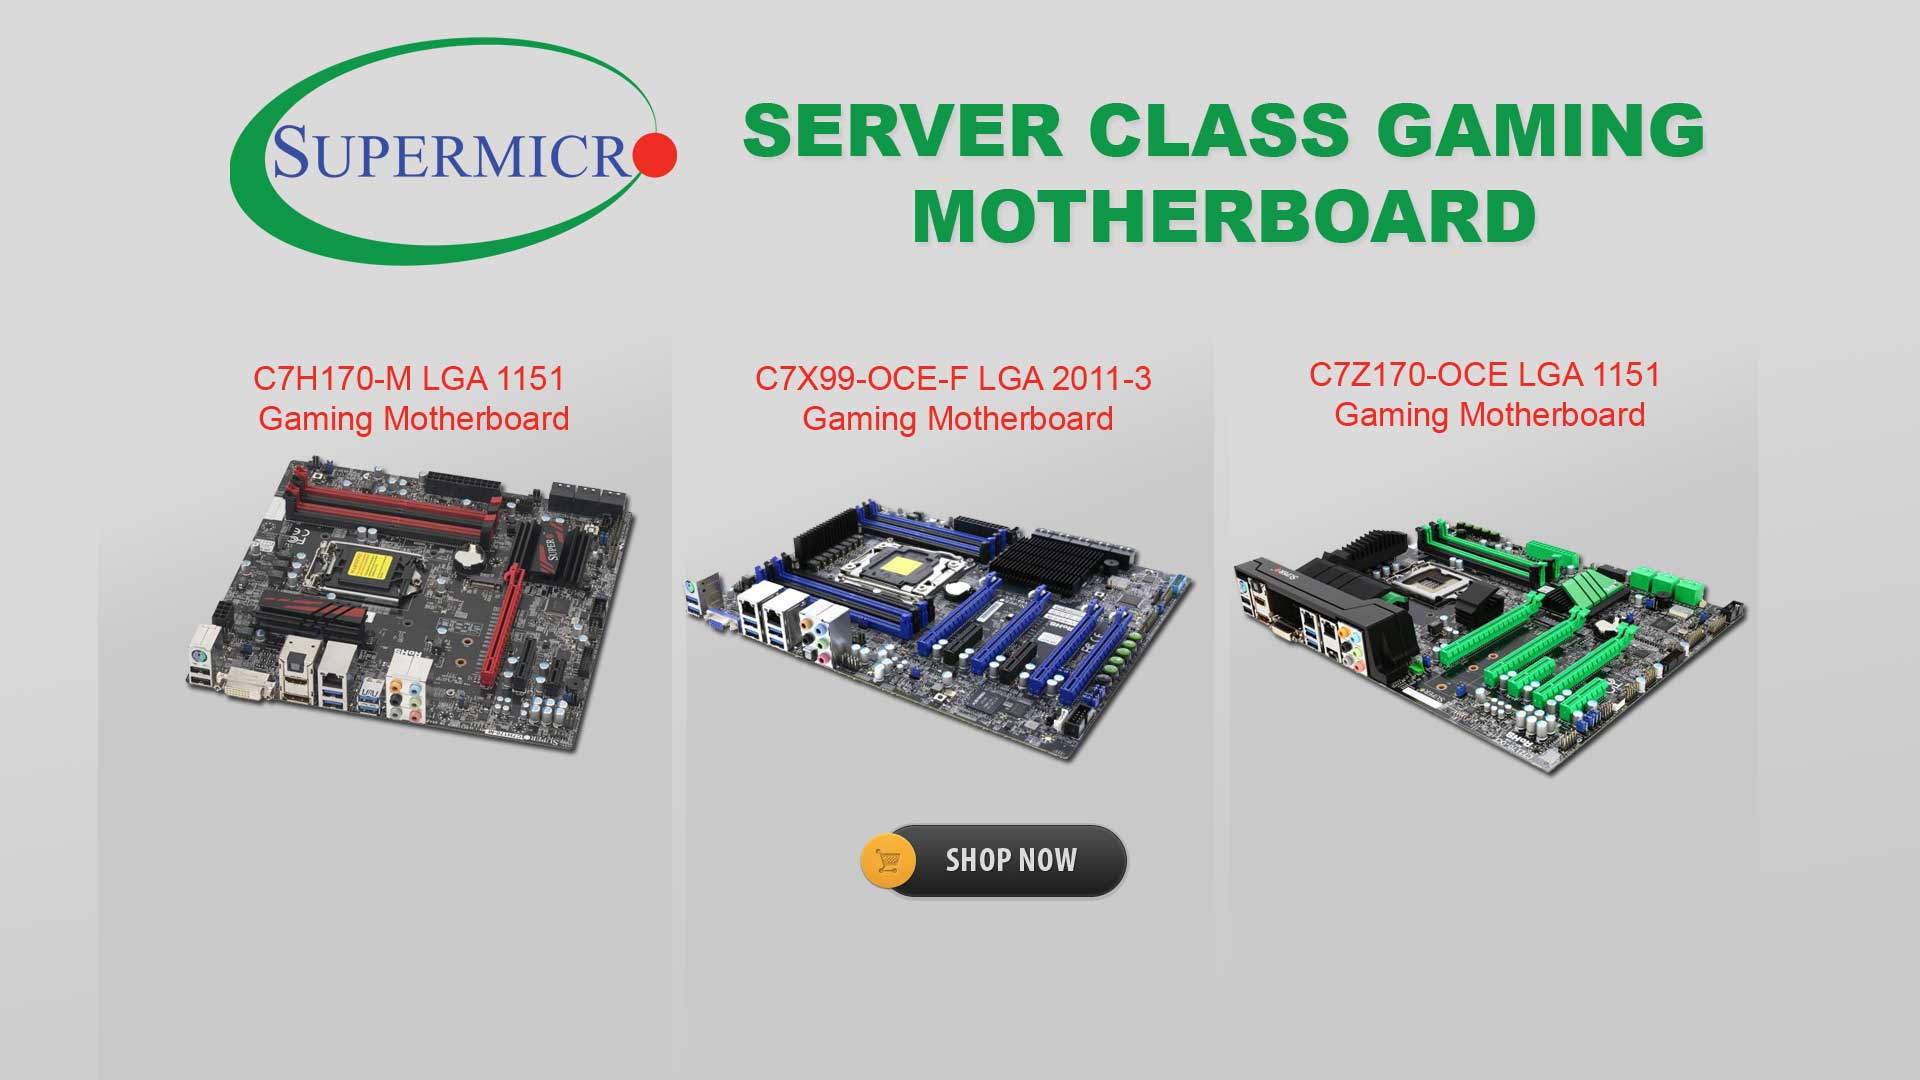 supermicro-Mothebroard-4